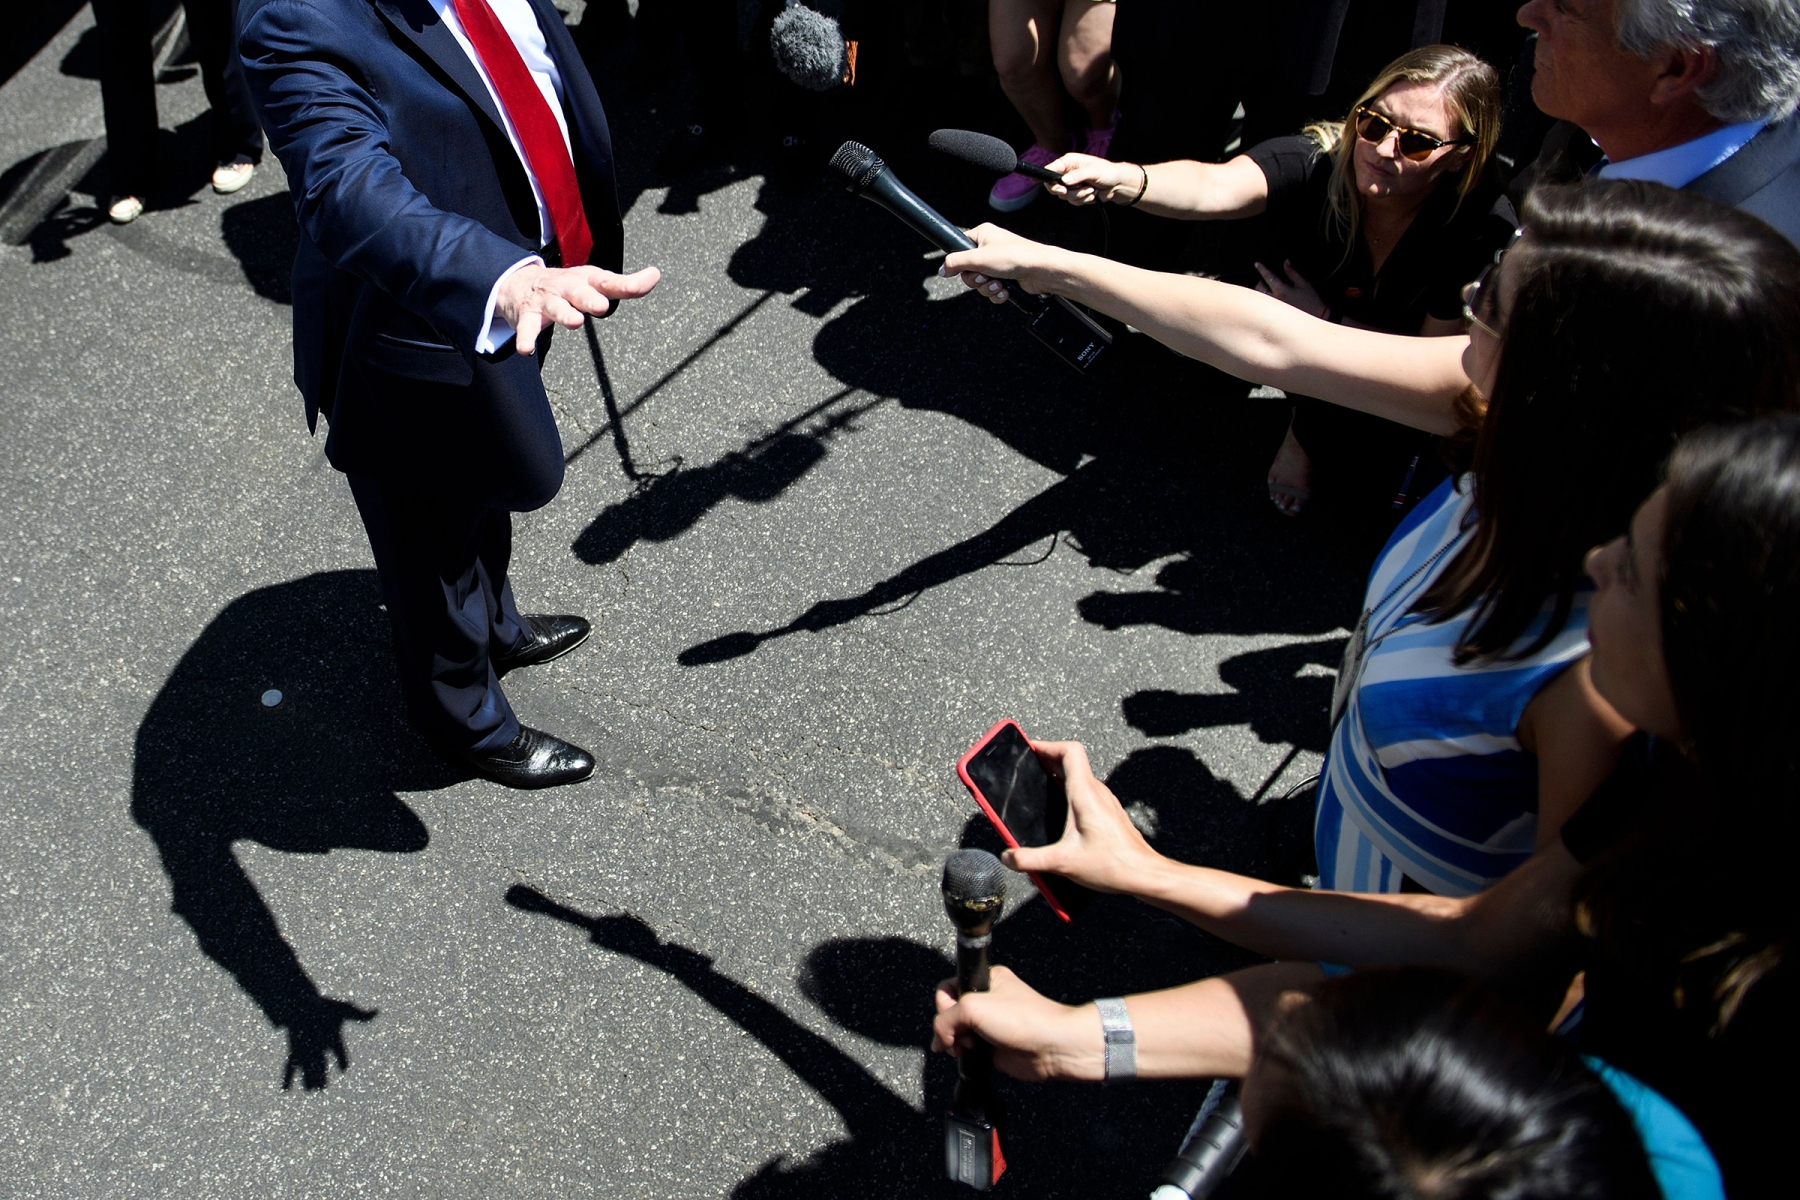 US President Donald Trump talks to the press during the 3rd Annual Made in America Product Showcase  on the South Lawn at the White House in Washington, DC, on July 15, 2019. (Photo by Brendan Smialowski / AFP)        (Photo credit should read BRENDAN SMIALOWSKI/AFP via Getty Images)